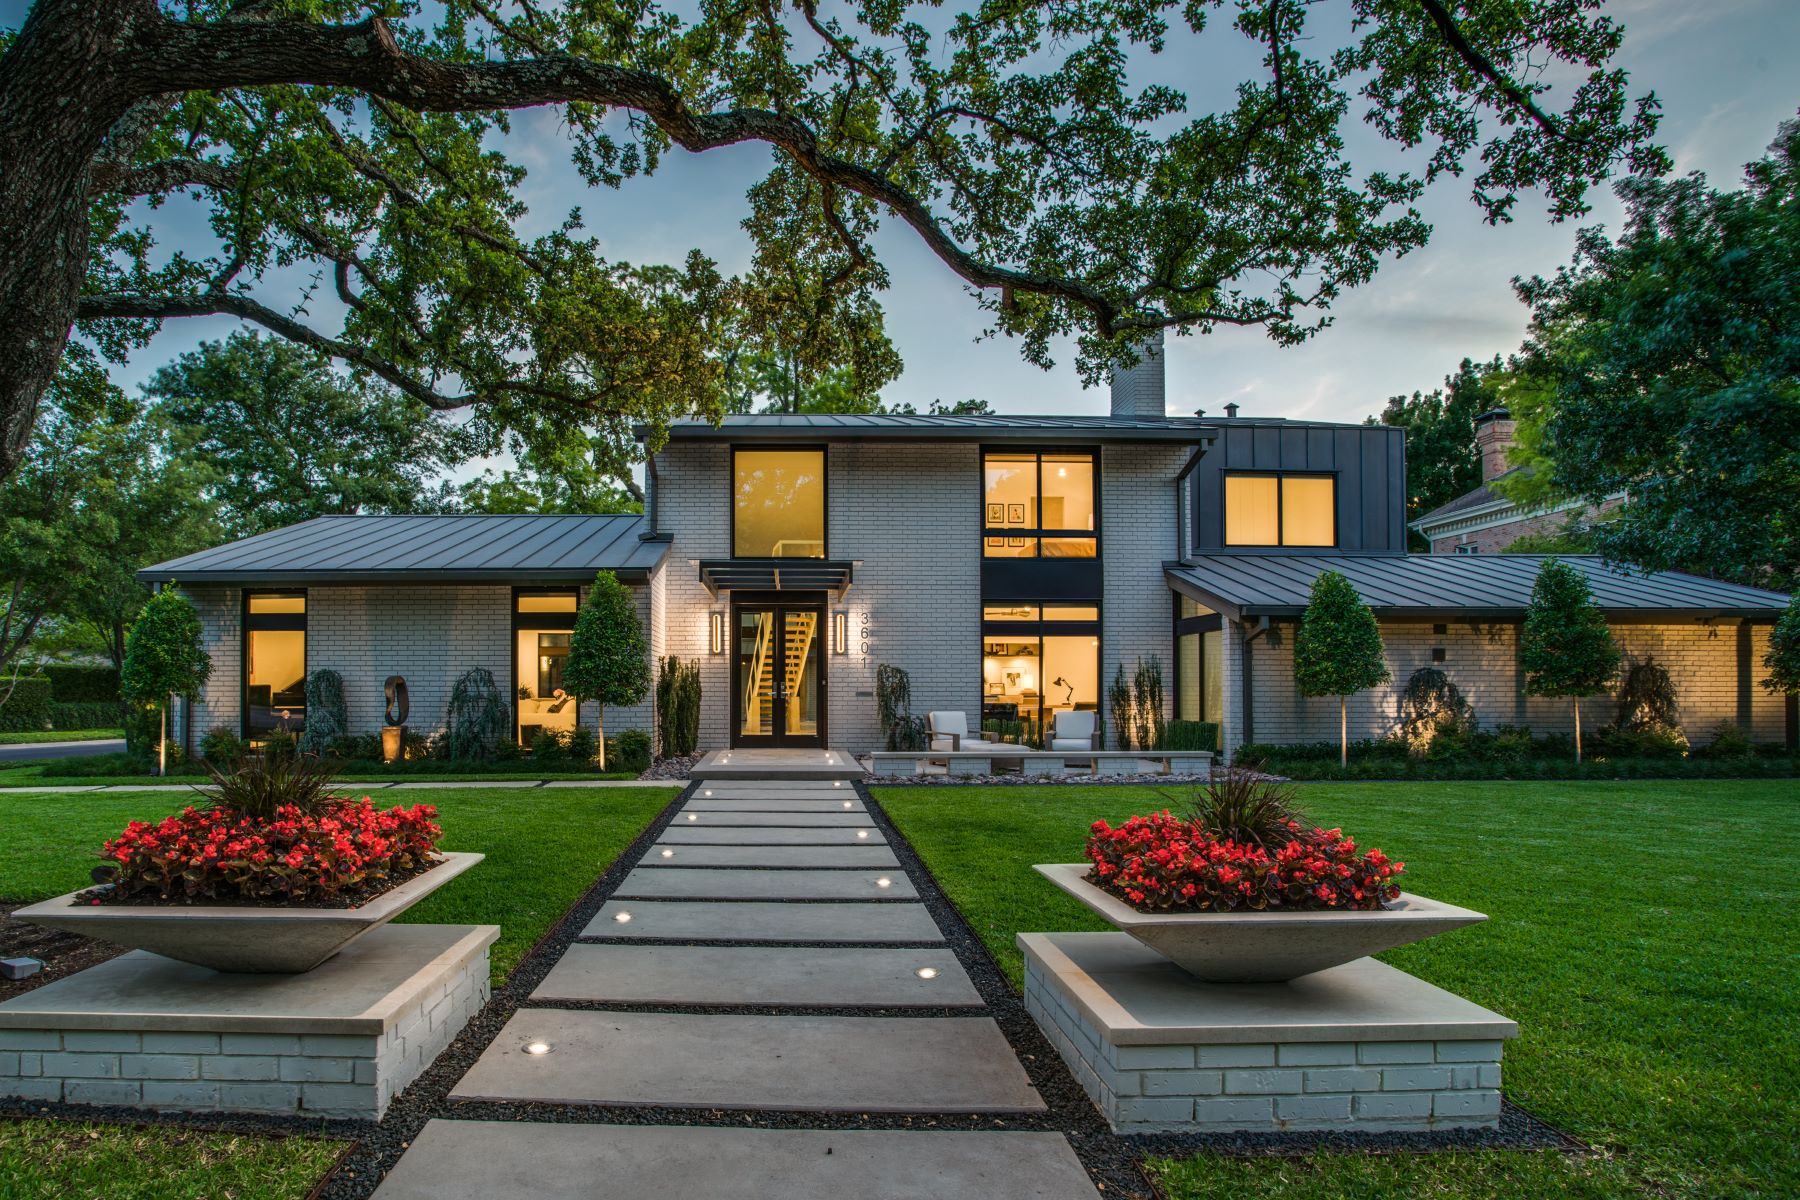 Single Family Homes for Sale at A True Architectural Gem 3601 Euclid Avenue Highland Park, Texas 75205 United States